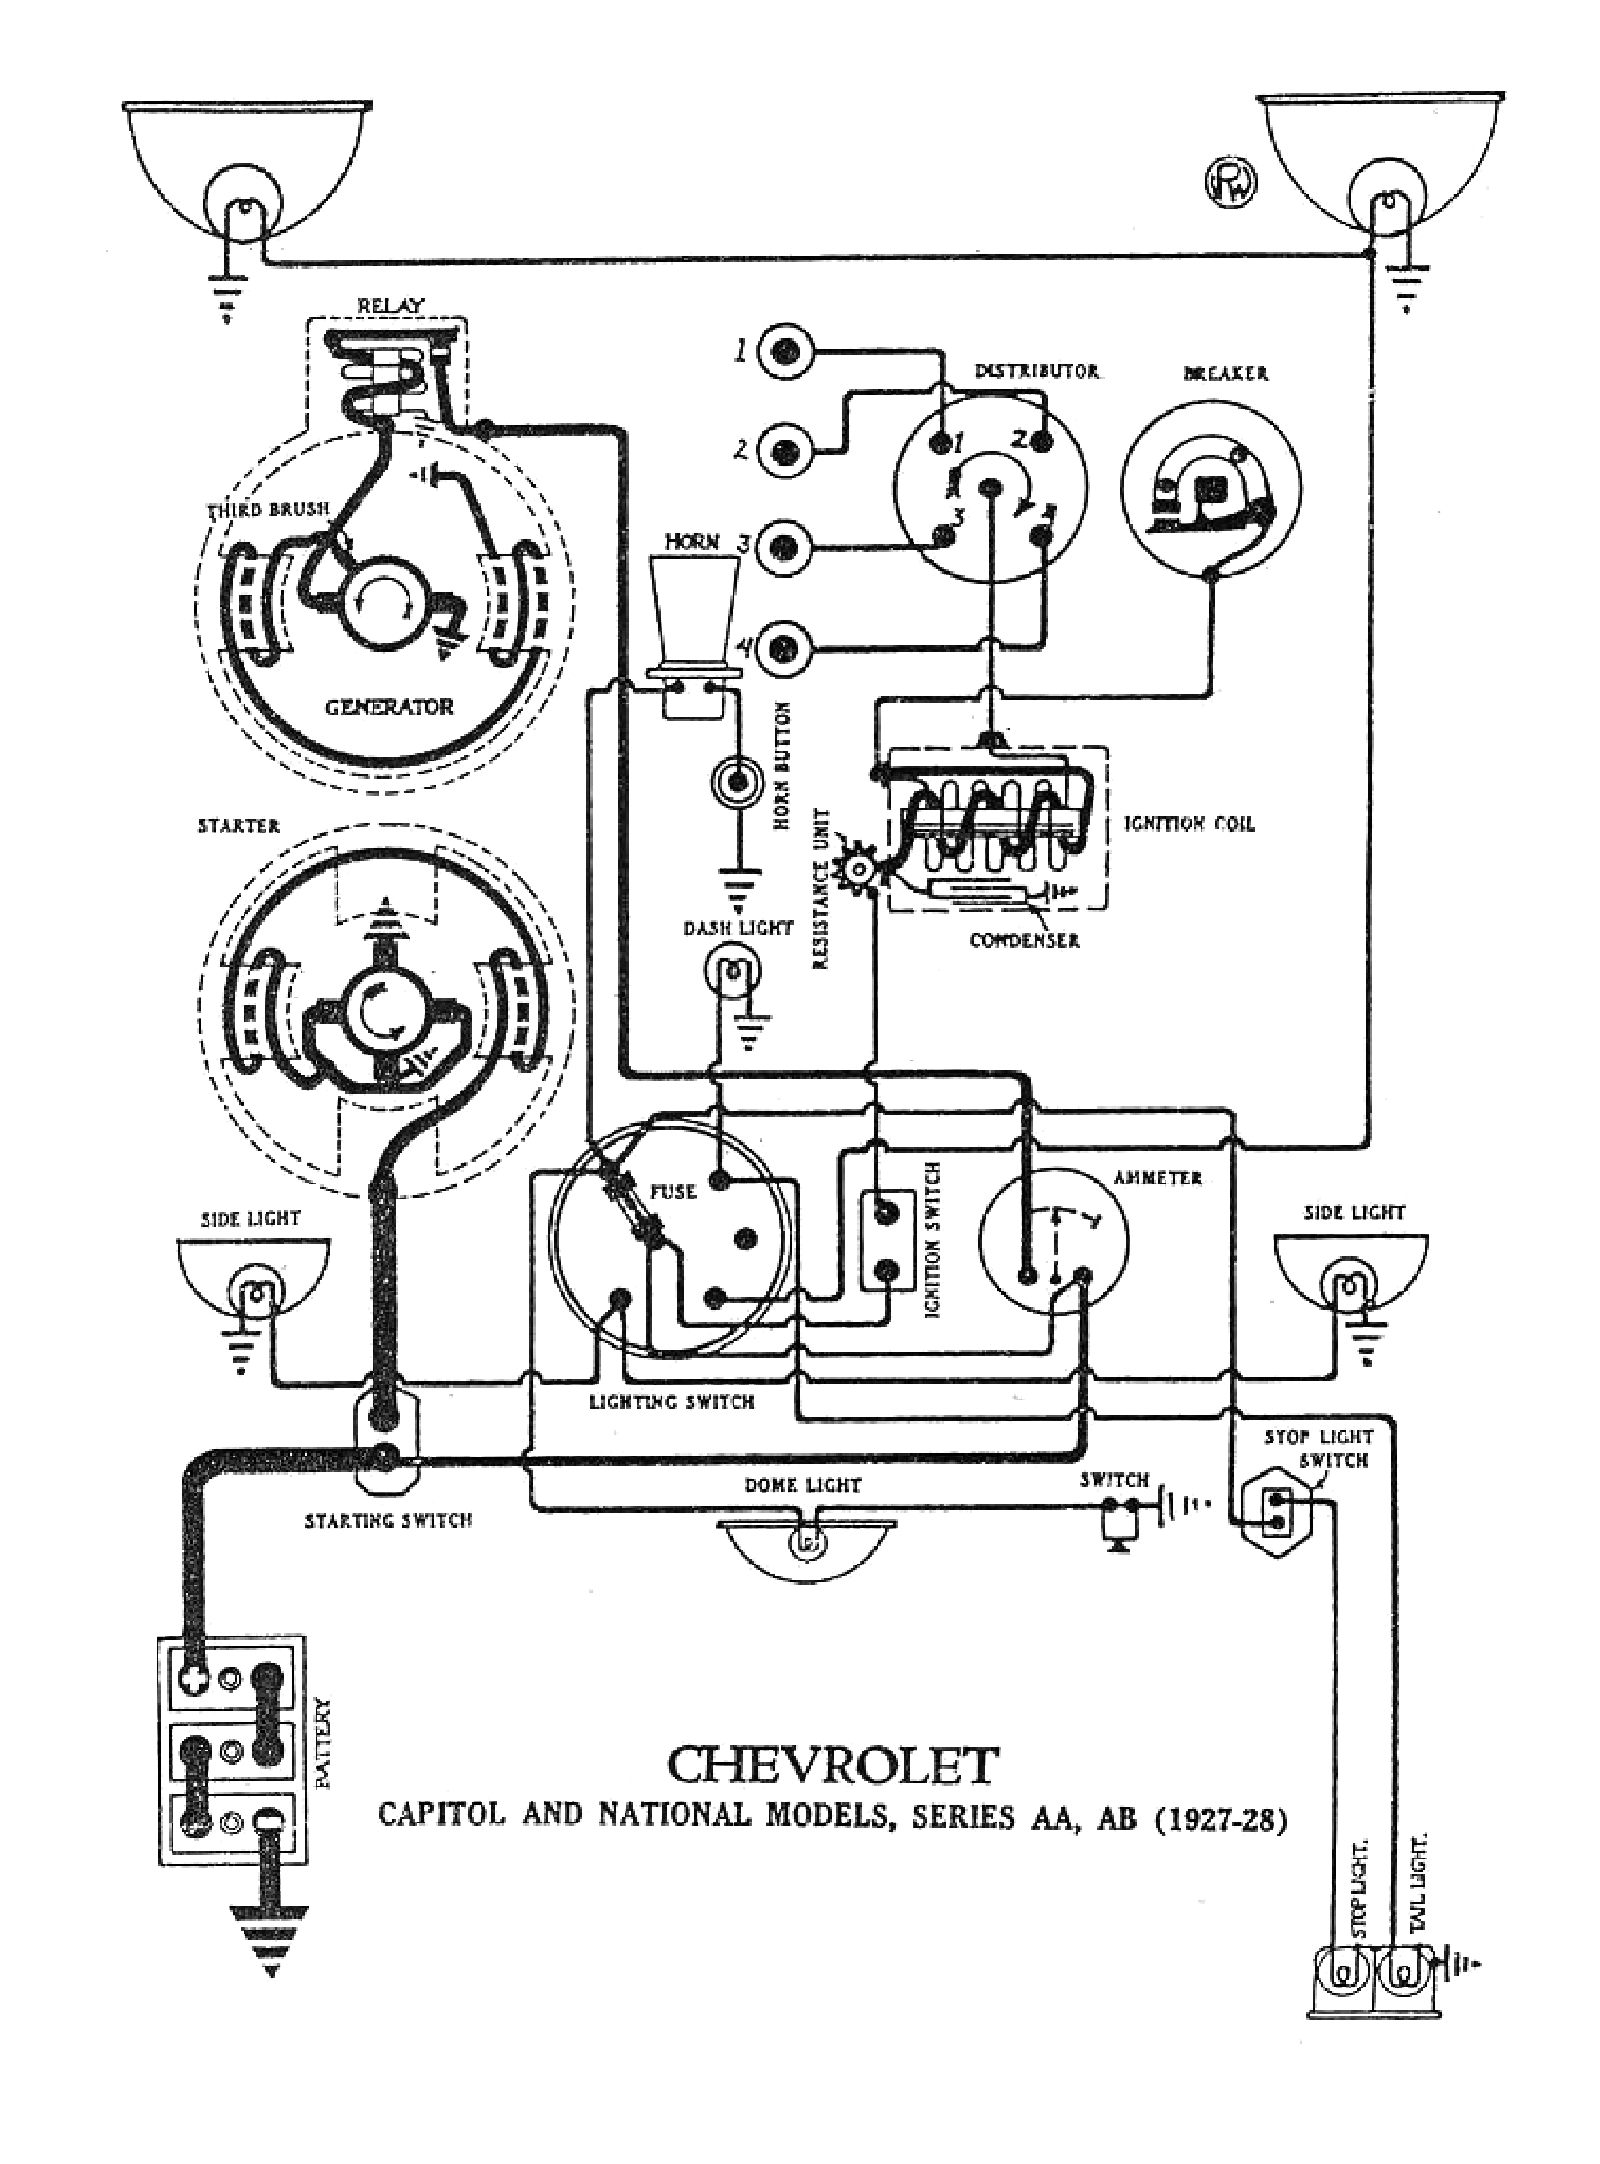 1931 ford wiring diagram free - wiring diagrams button free-breed -  free-breed.lamorciola.it  free-breed.lamorciola.it